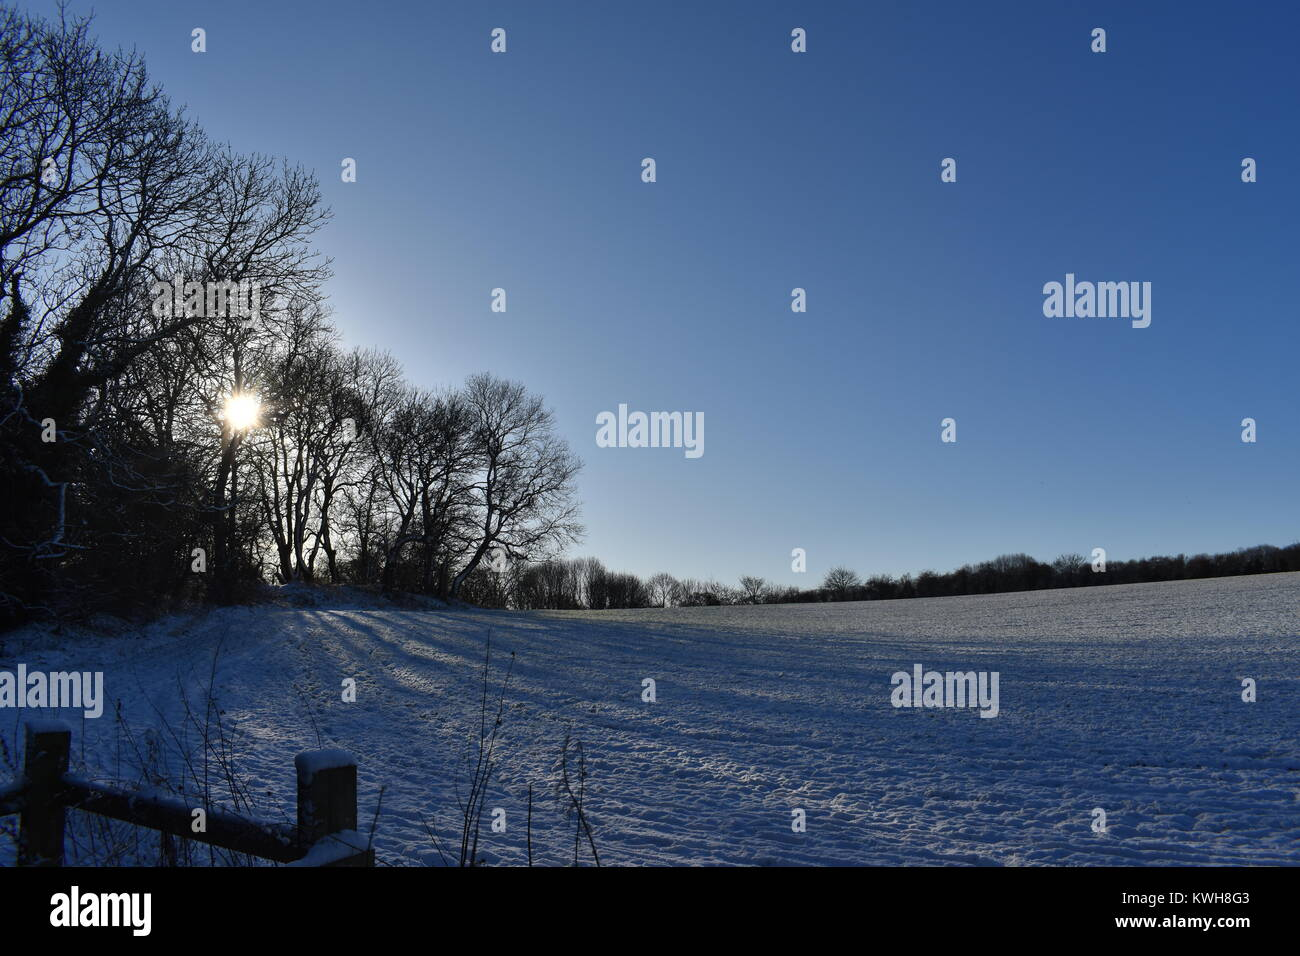 Shadows covering snow field - Stock Image